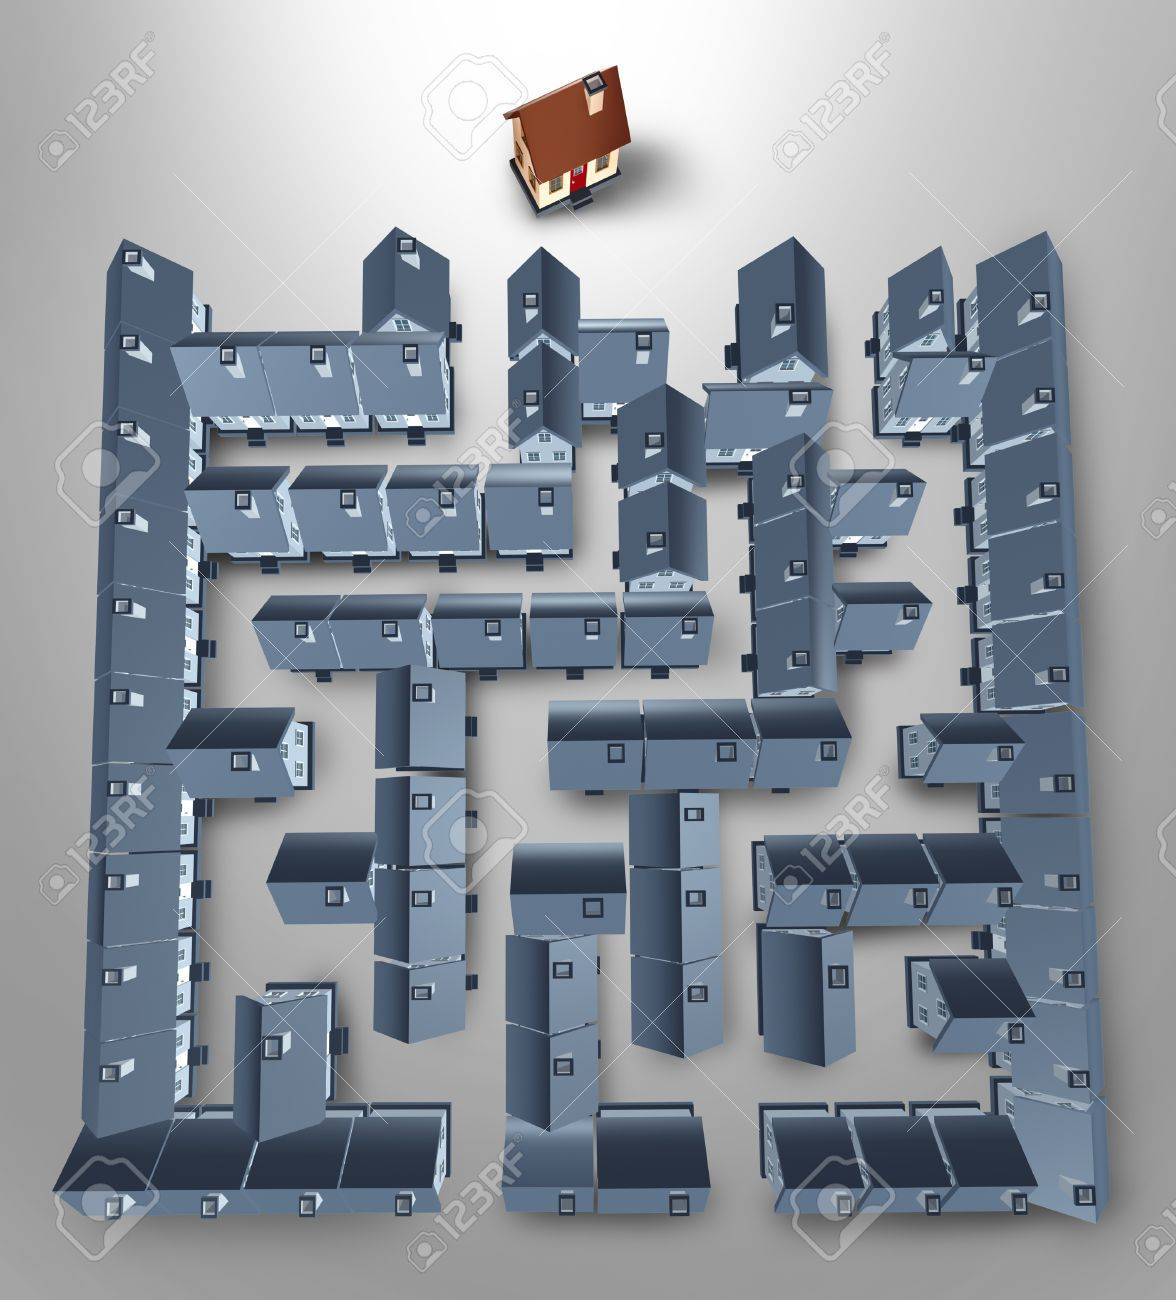 Home search and solutions as a real estate concept with a maze or labyrinth made of a group of grey homes and a perfect family house at the end of the puzzle as a result of residential advice Stock Photo - 19446959